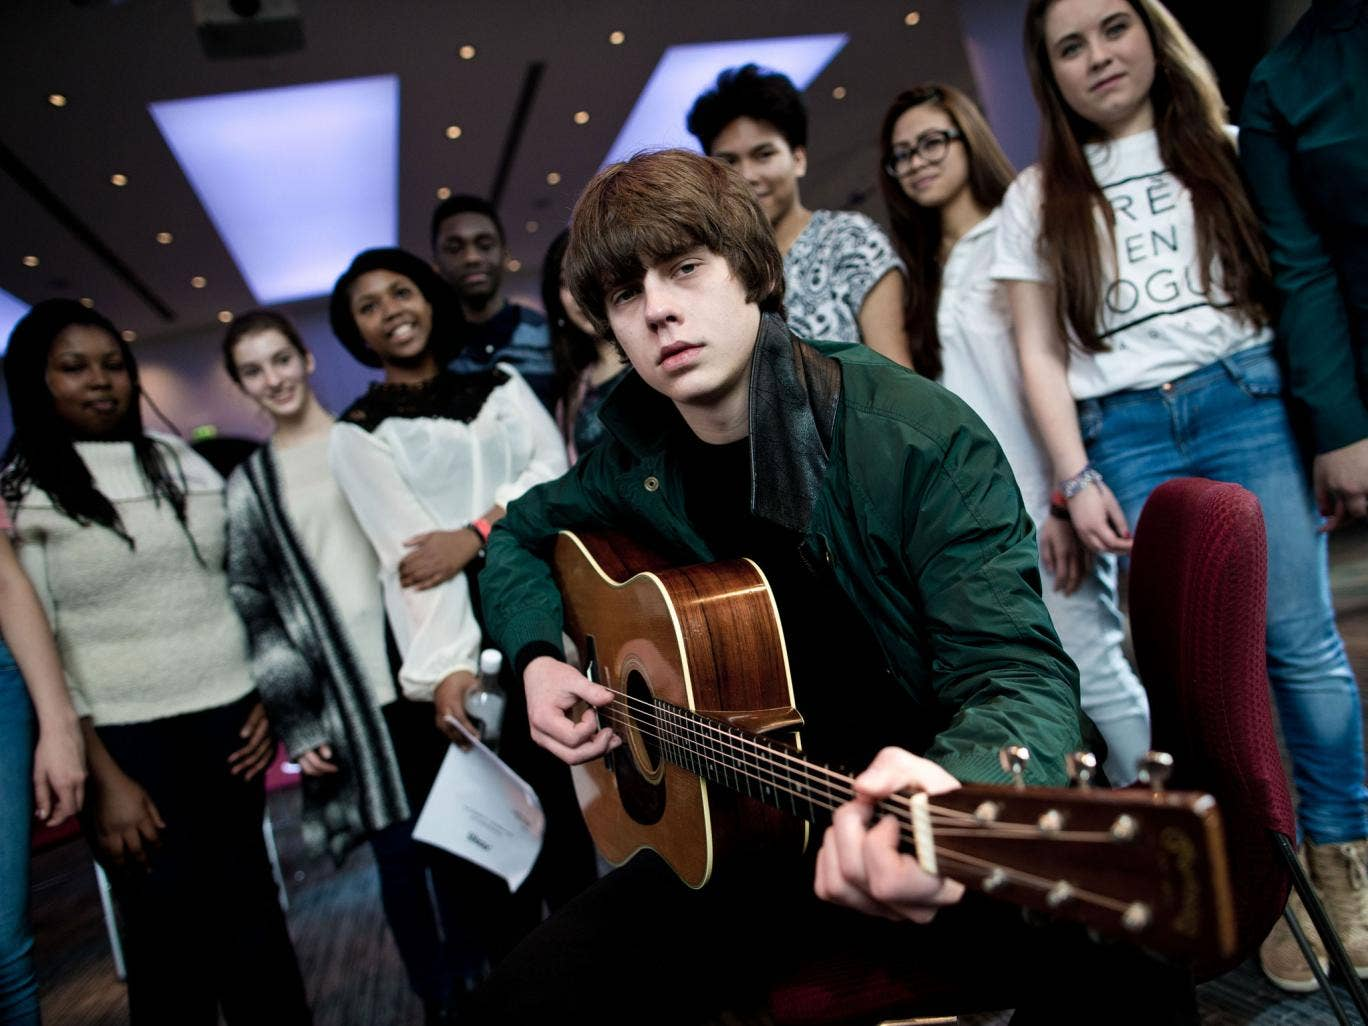 Singer-songwriter Jake Bugg photographed in the Elgar Room at the Royal Albert Hall with 10 young vocalists from schools in the Tri-Borough Music Hub